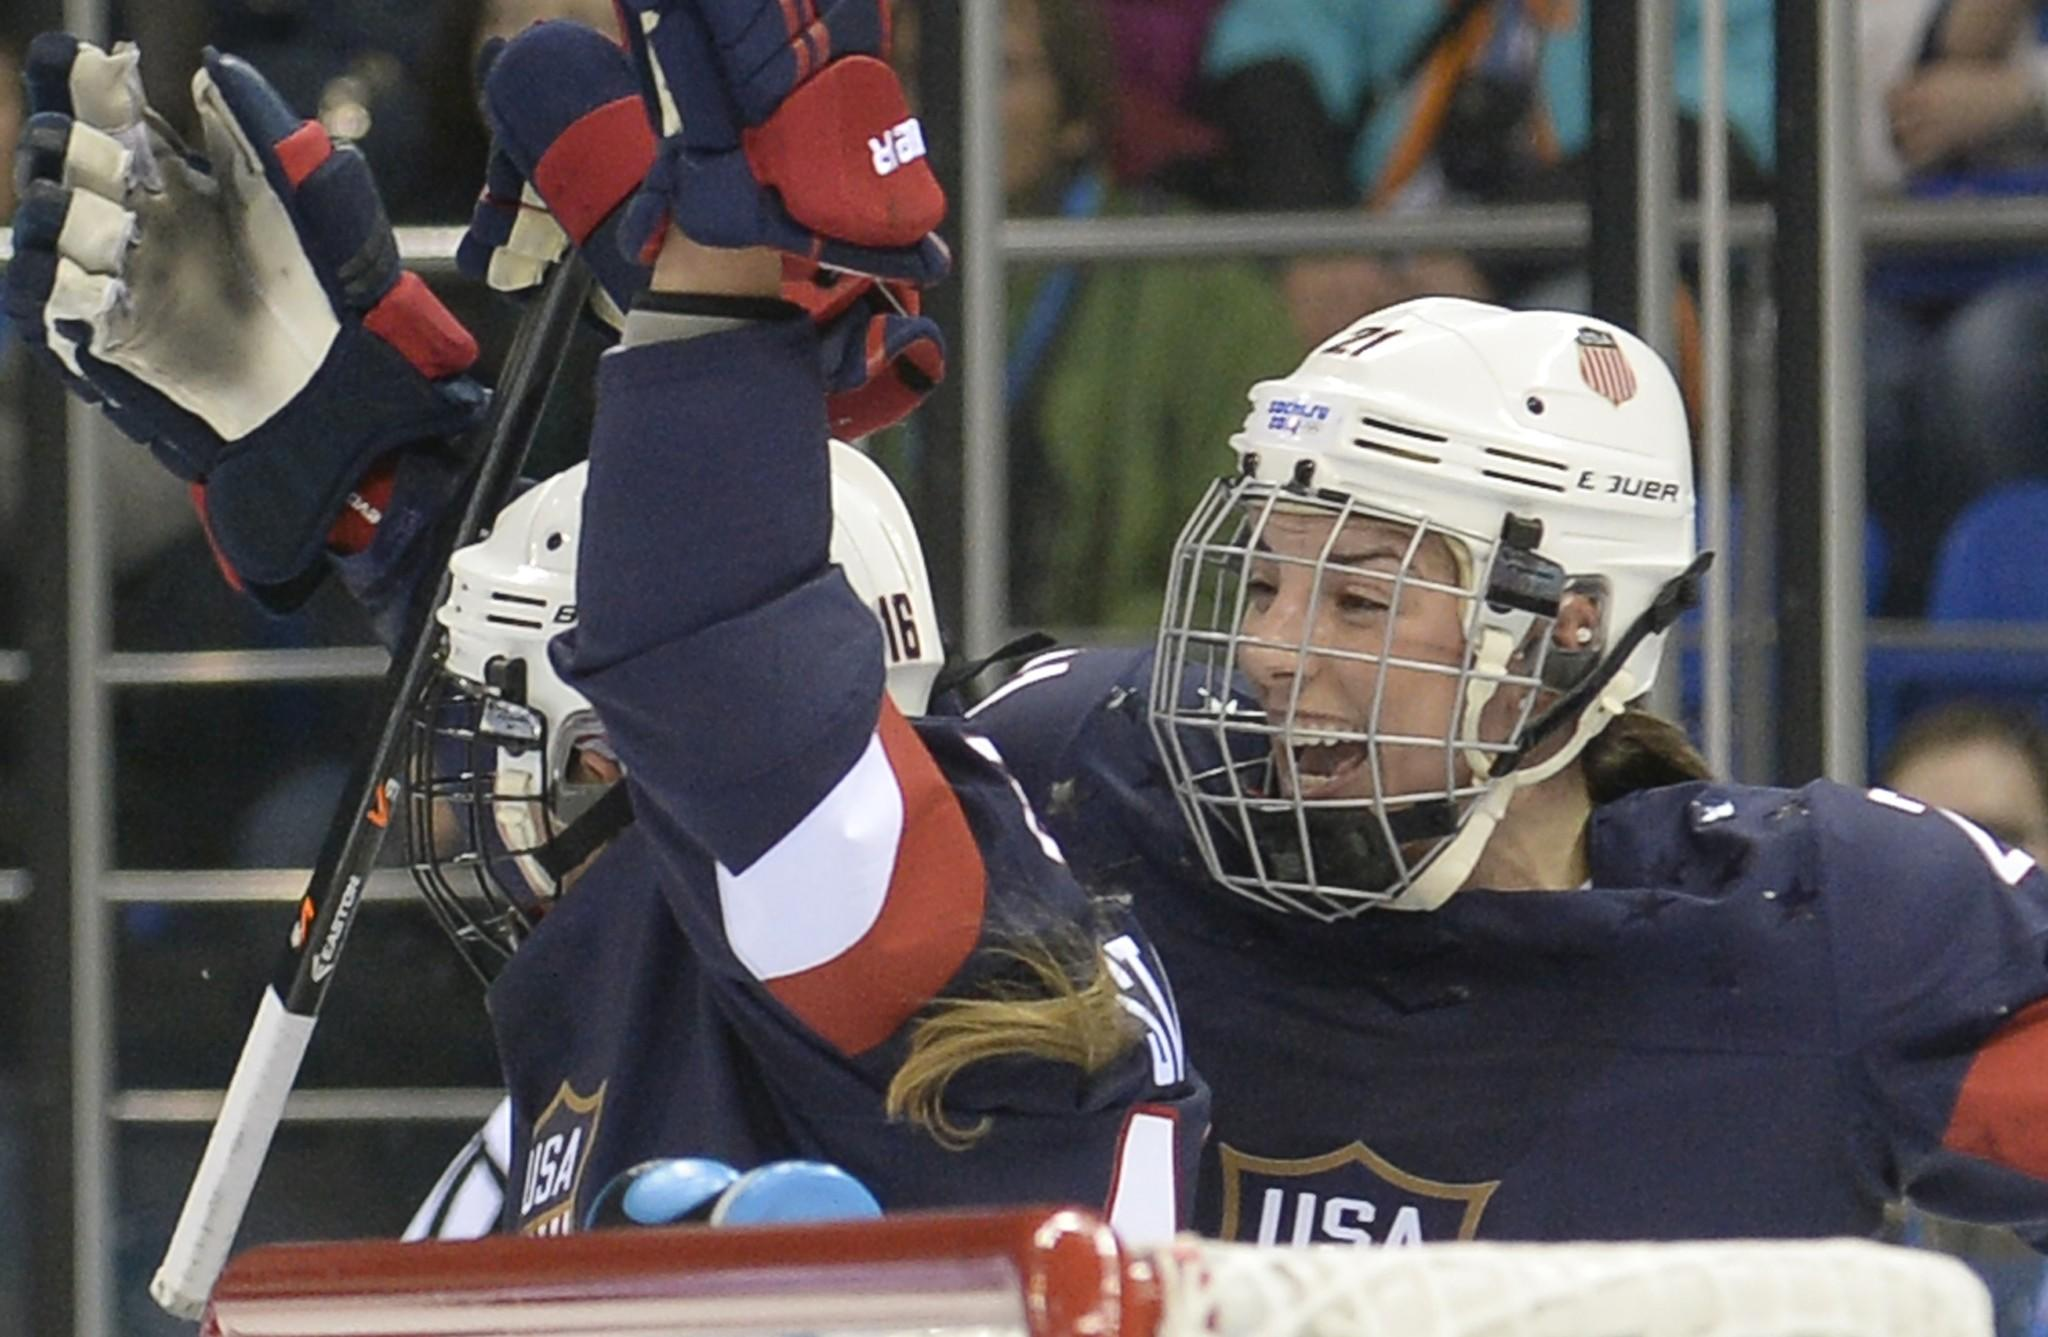 U.S. women's hockey player Hilary Knight congratulates Kelli Stack after Stack scored against Finland.